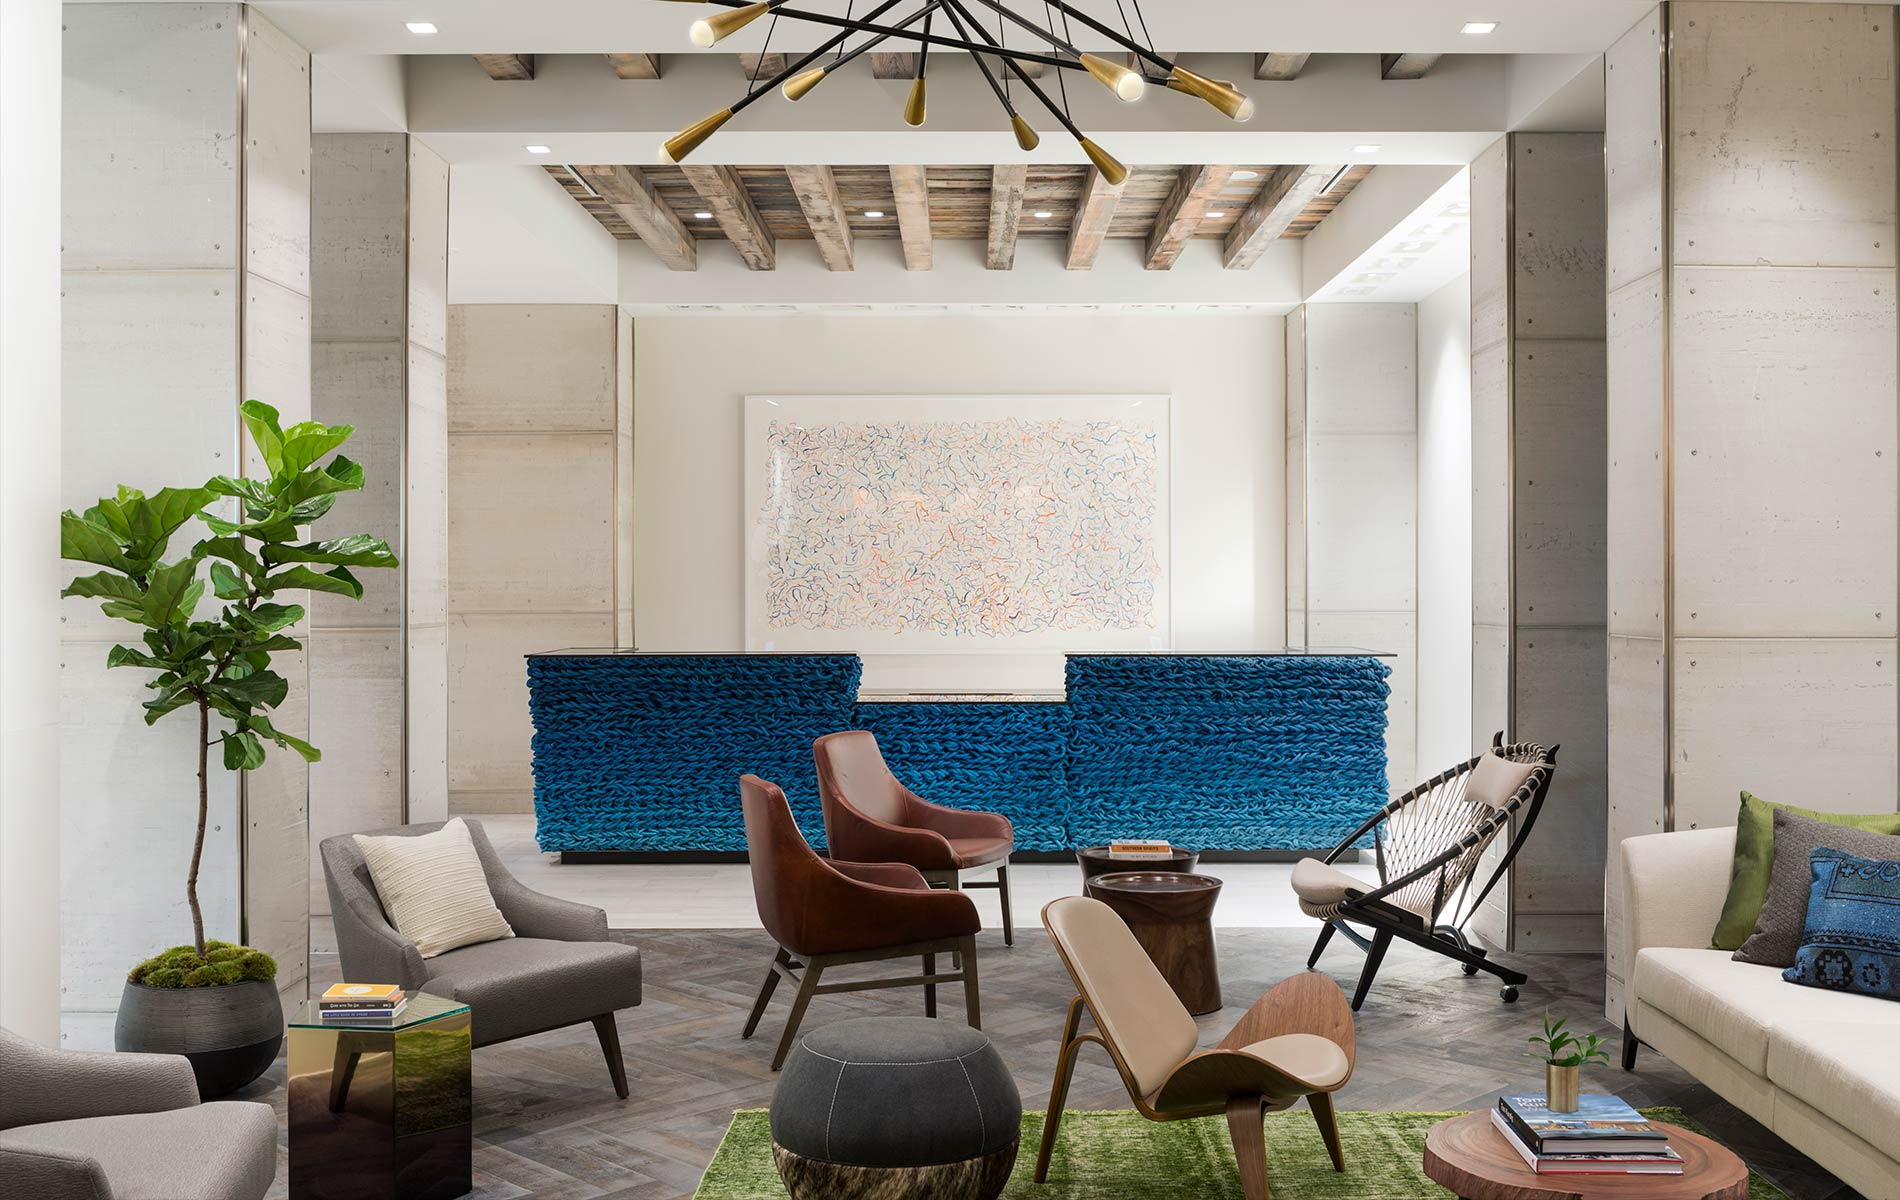 Lobby and lounge area at the Kimpton Aertson hotel in Nashville, Tennessee modern luxury